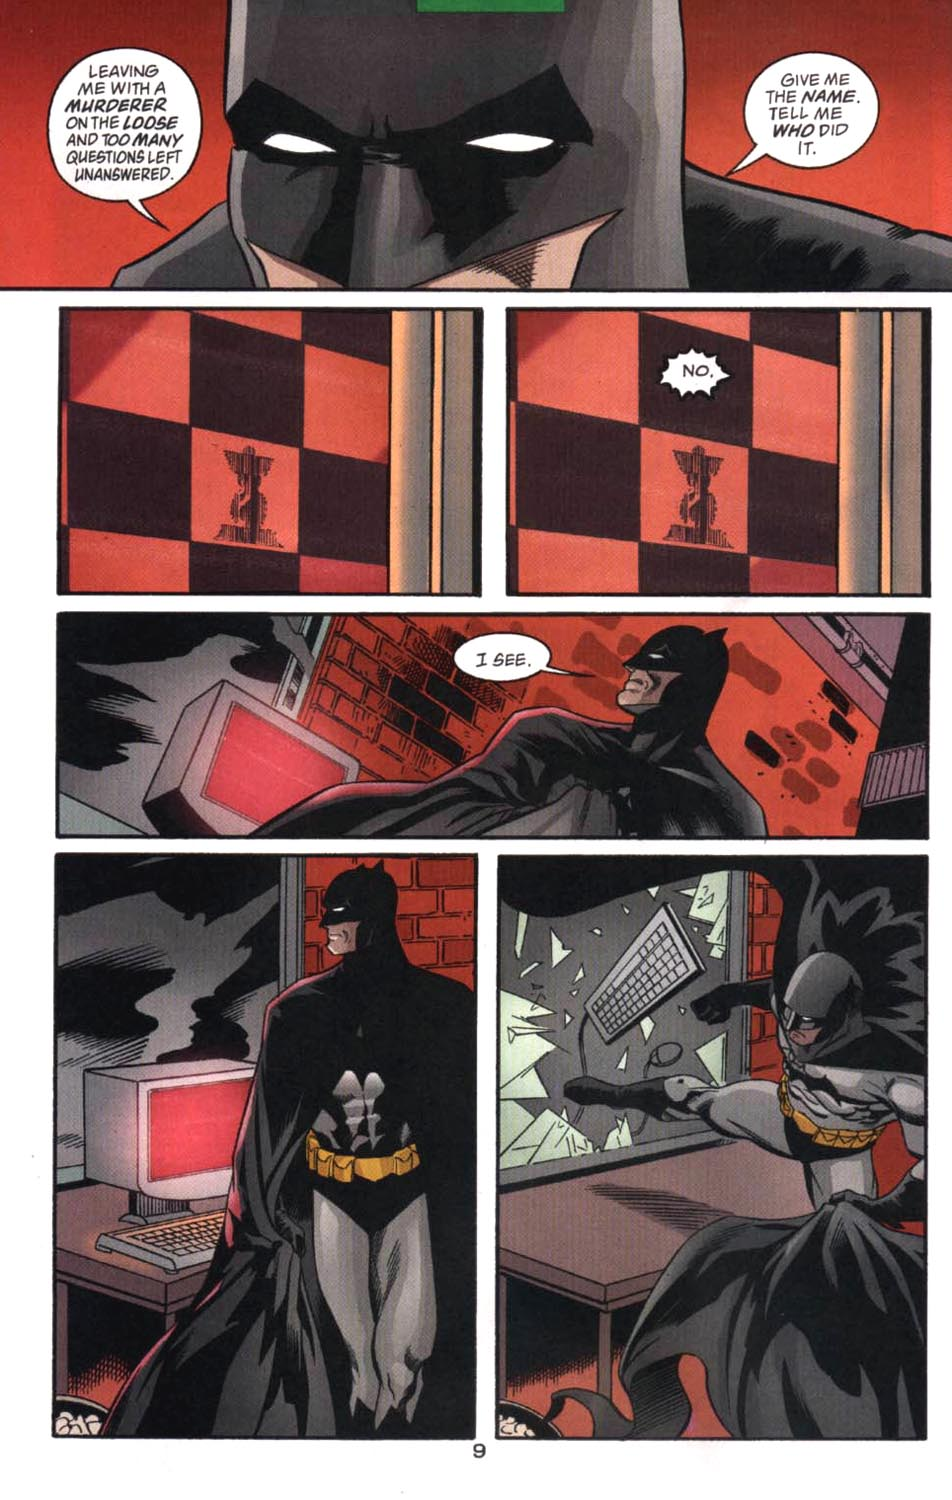 dc771p09Batman.jpg